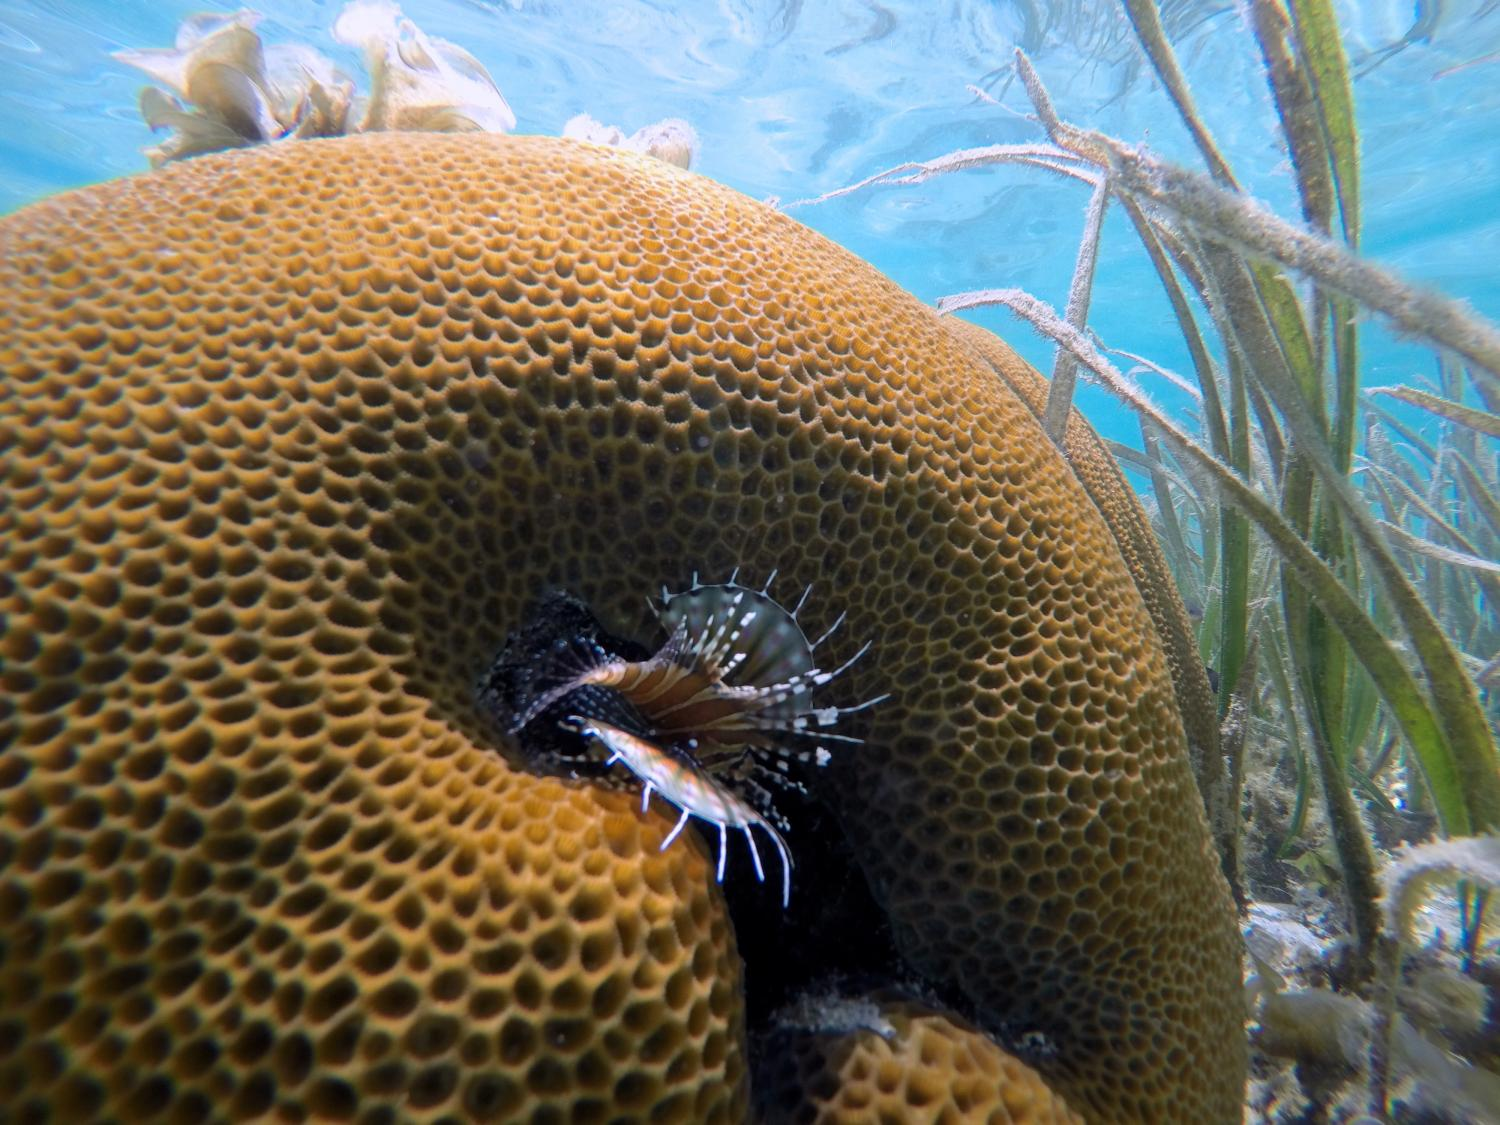 Seagrass beds animals - Fishes And Invertebrates Live Alongside Seagrass Meadows In Indonesia Credit Margaux Hein